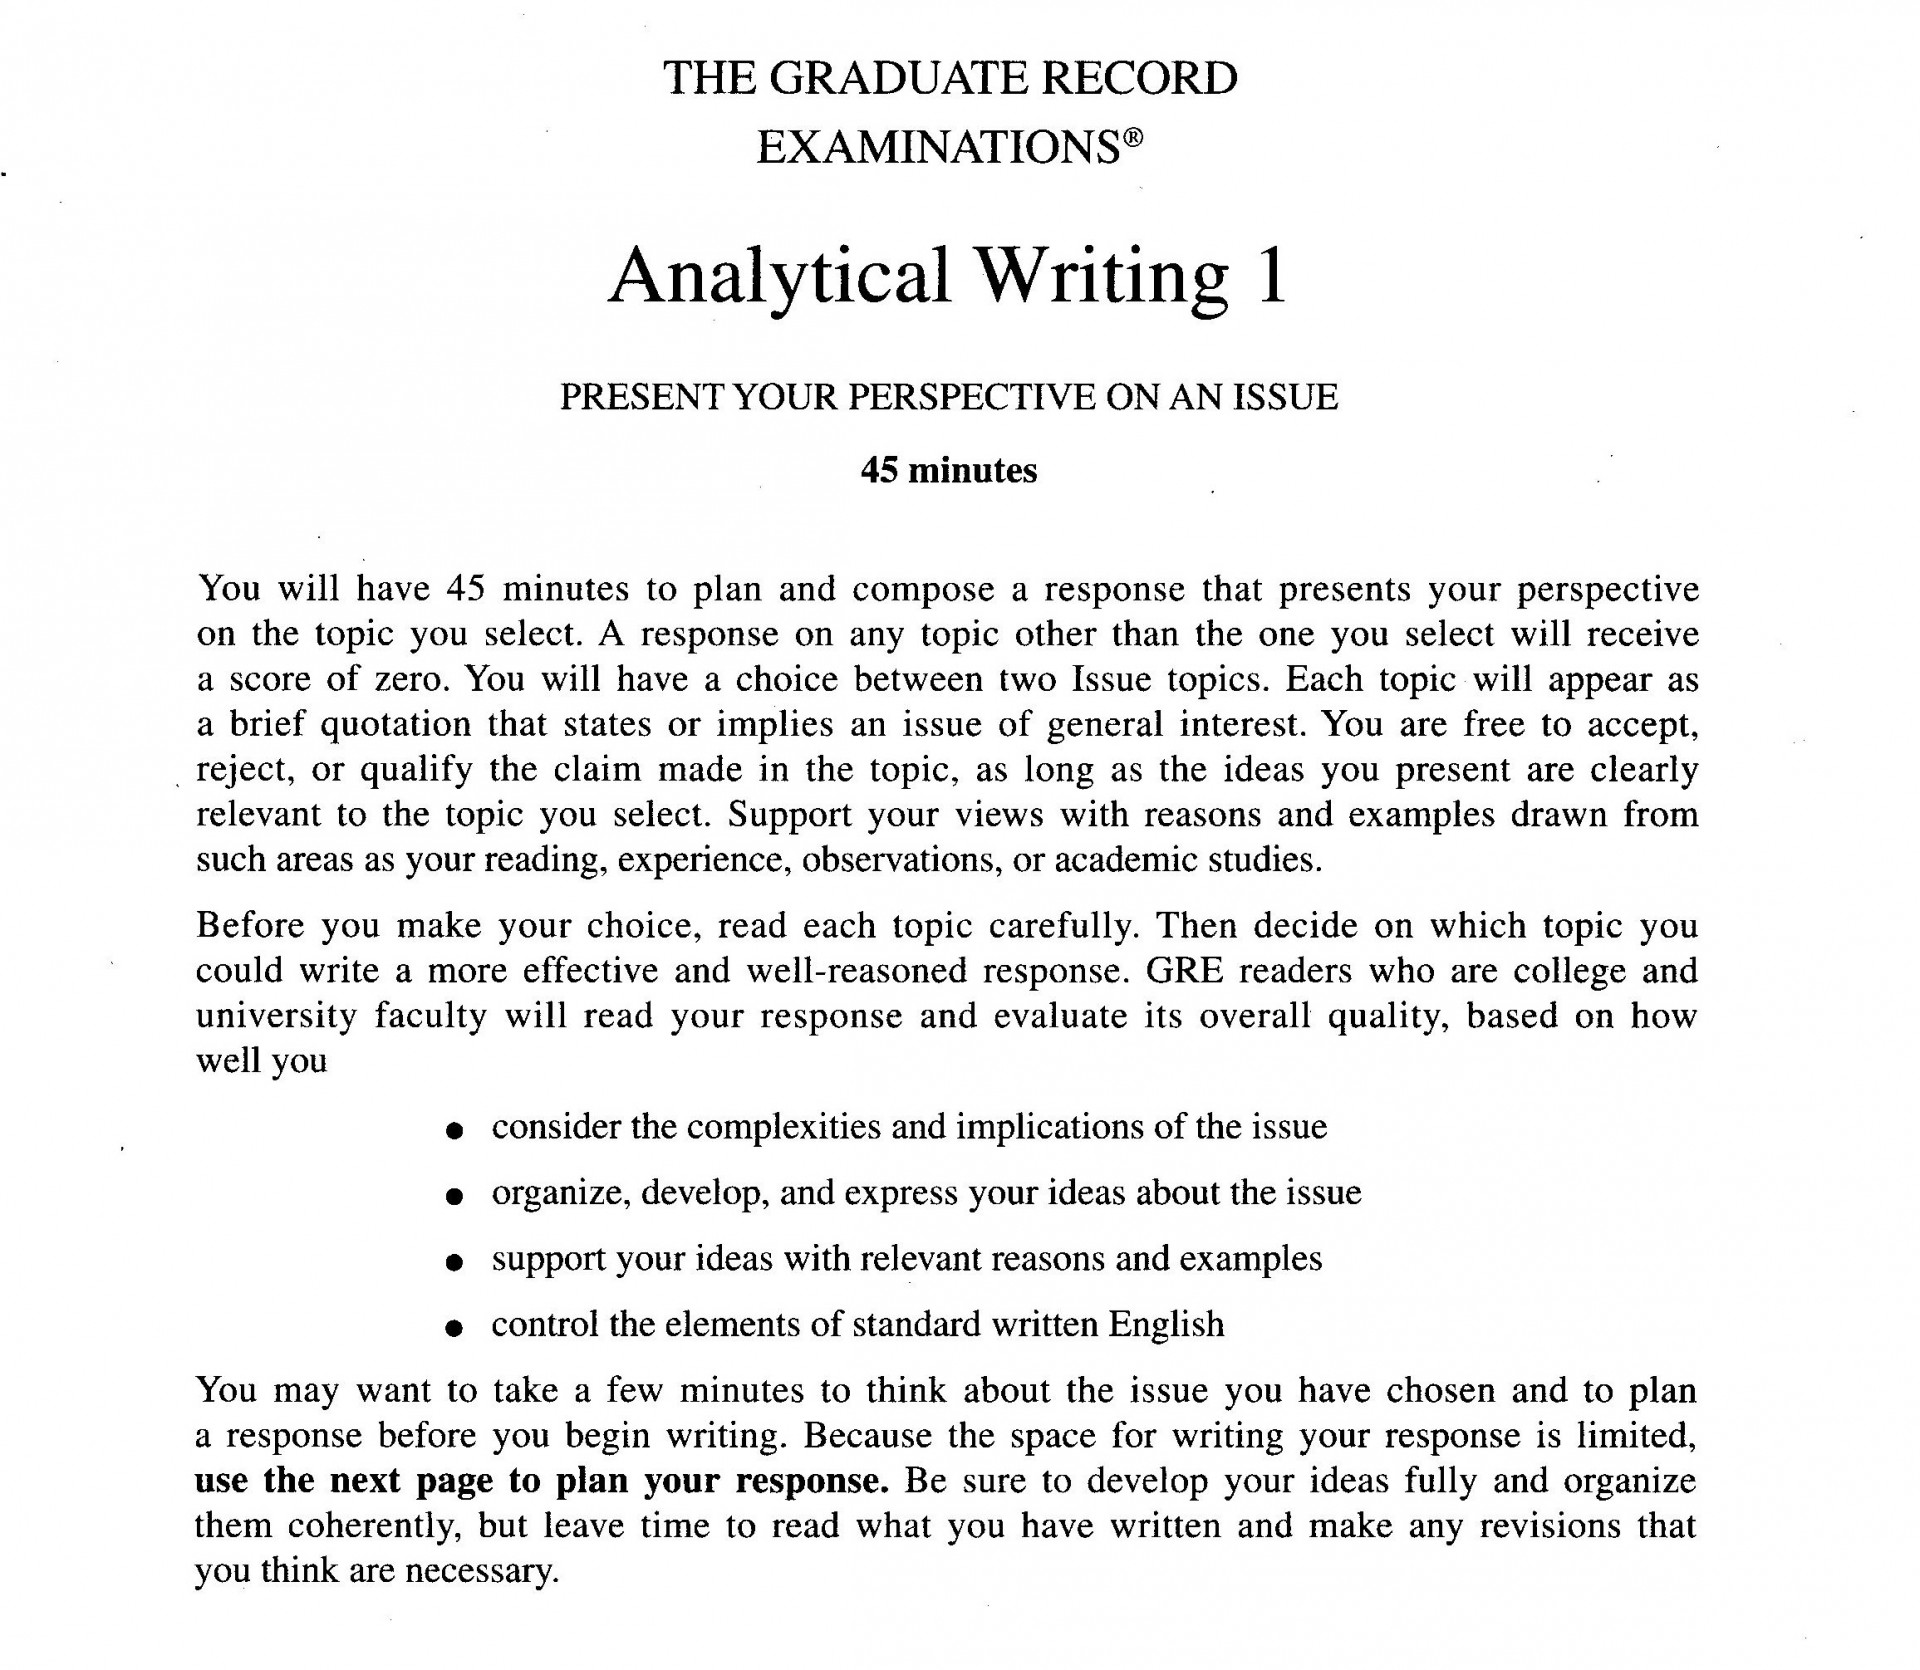 005 Analytical20writing20issue20task20directions20for20gre201 Essay Example Gre Argument Frightening Template 1920